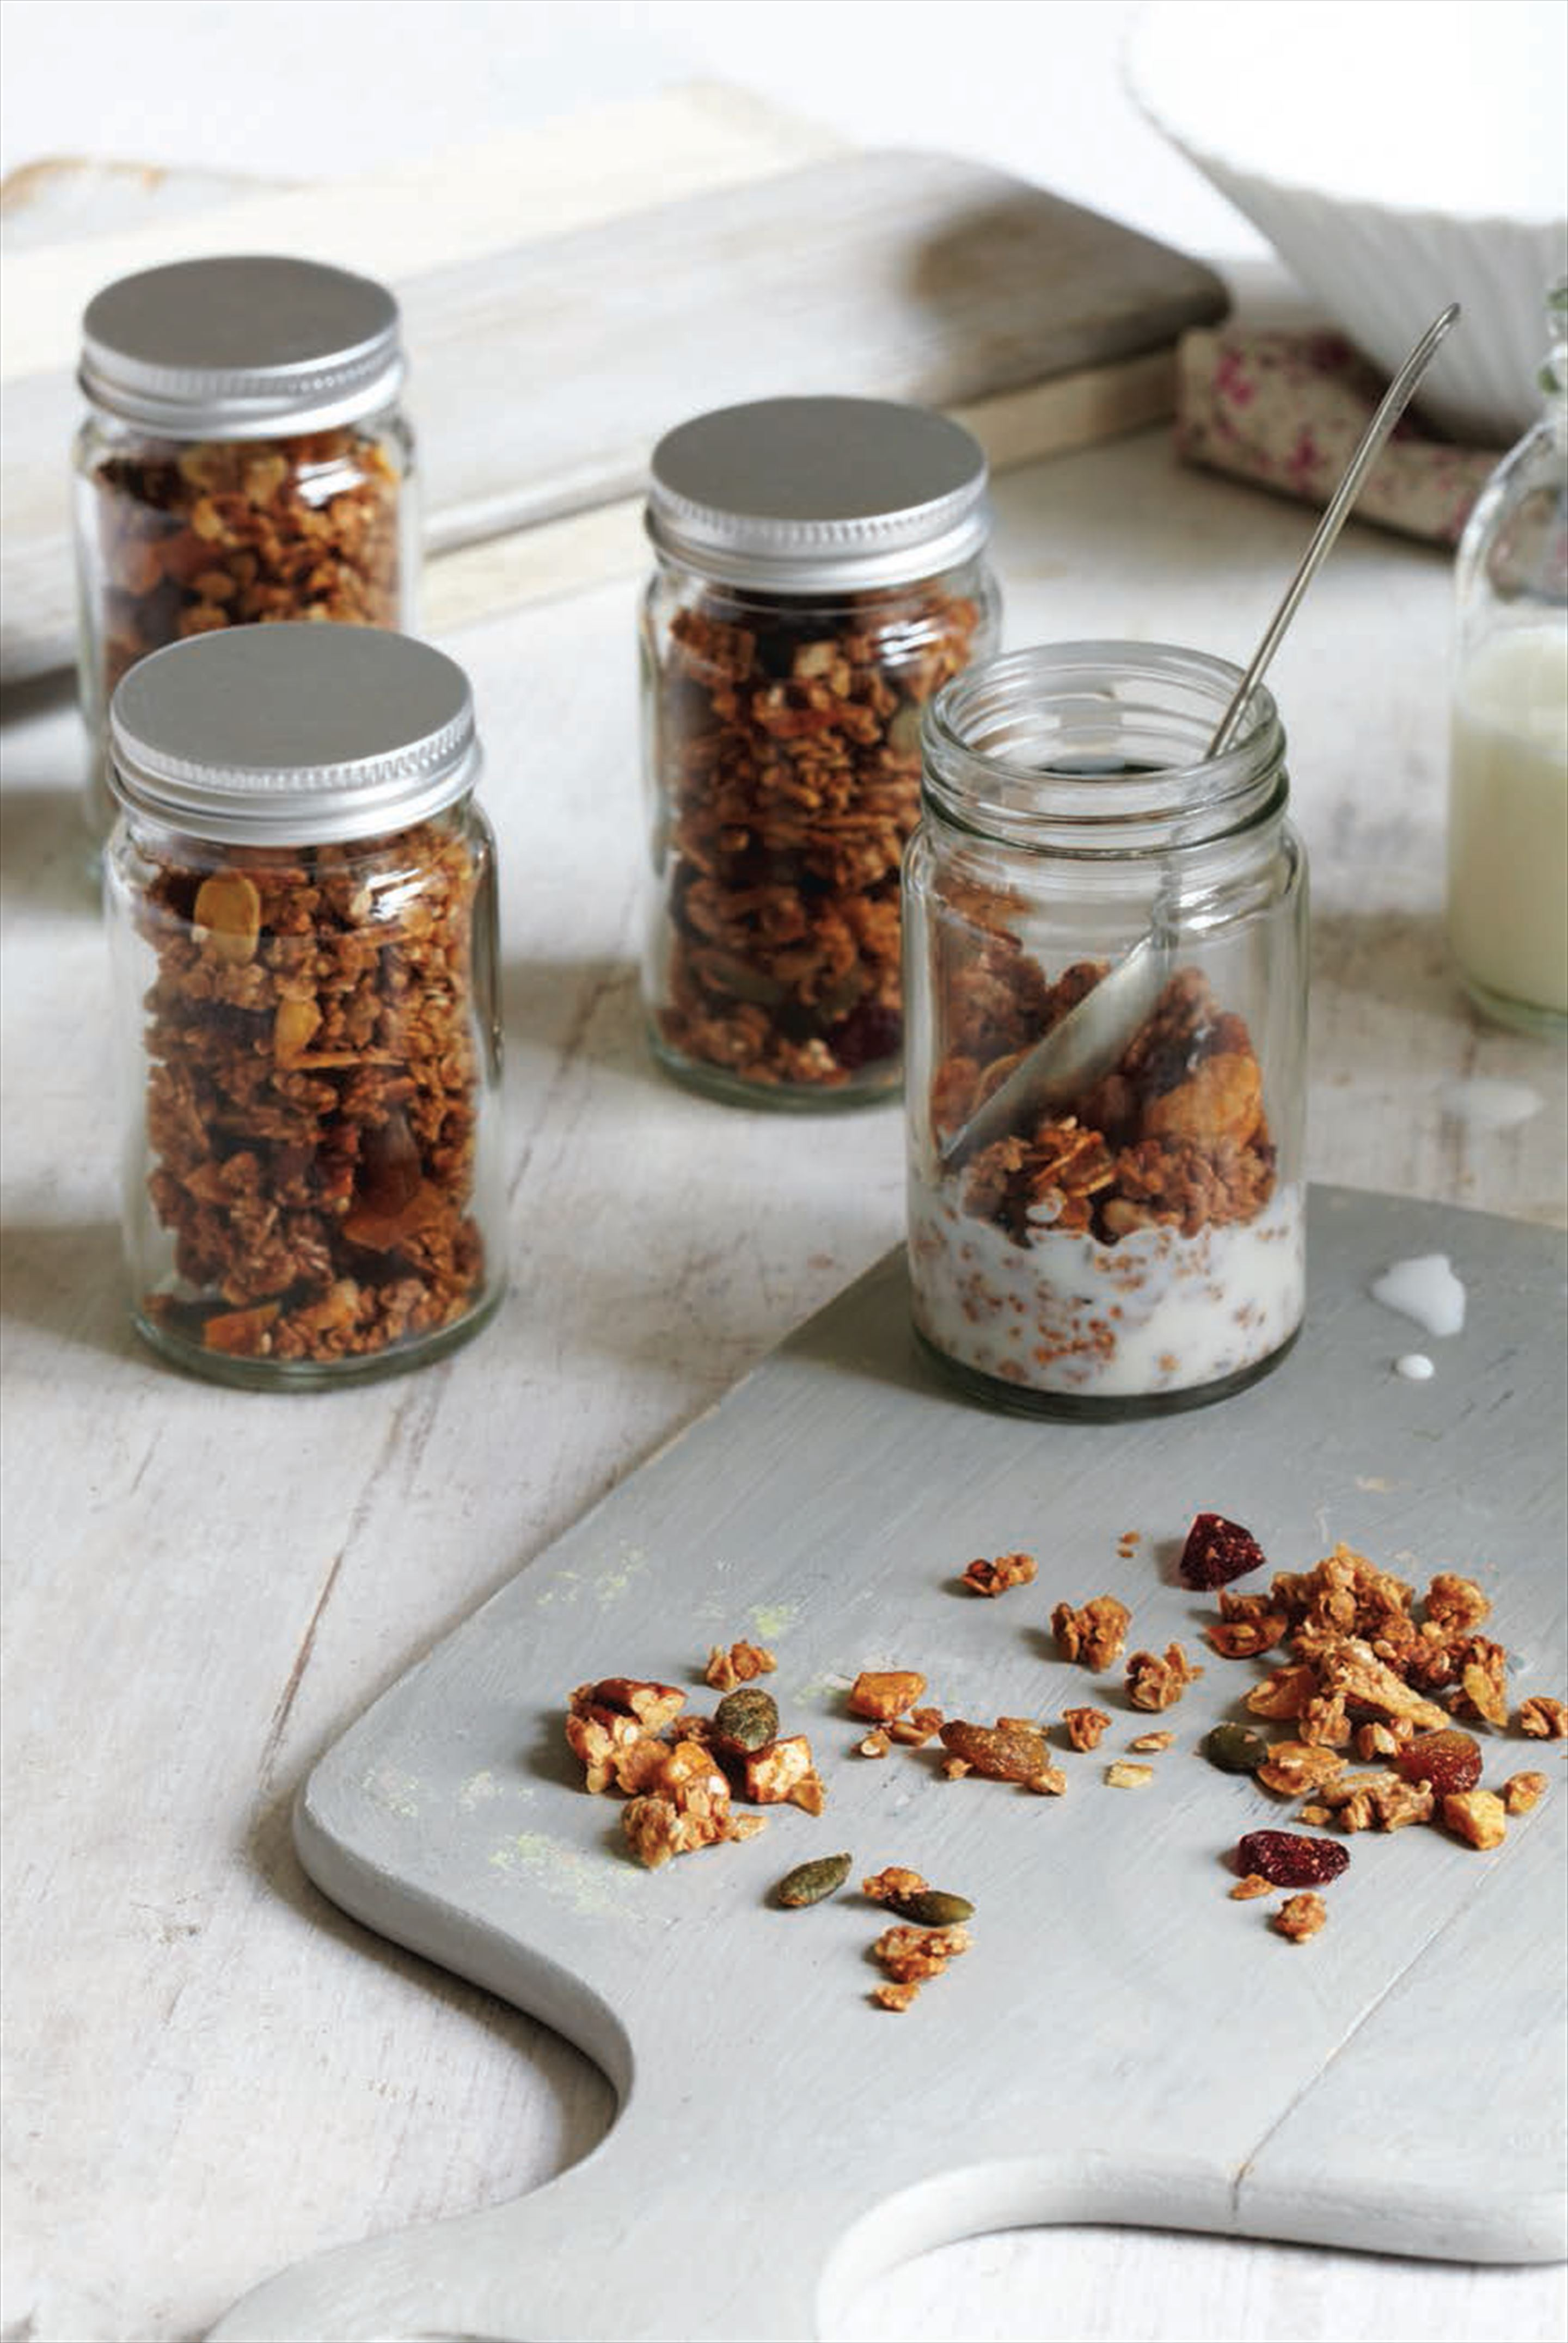 Homemade granola jars